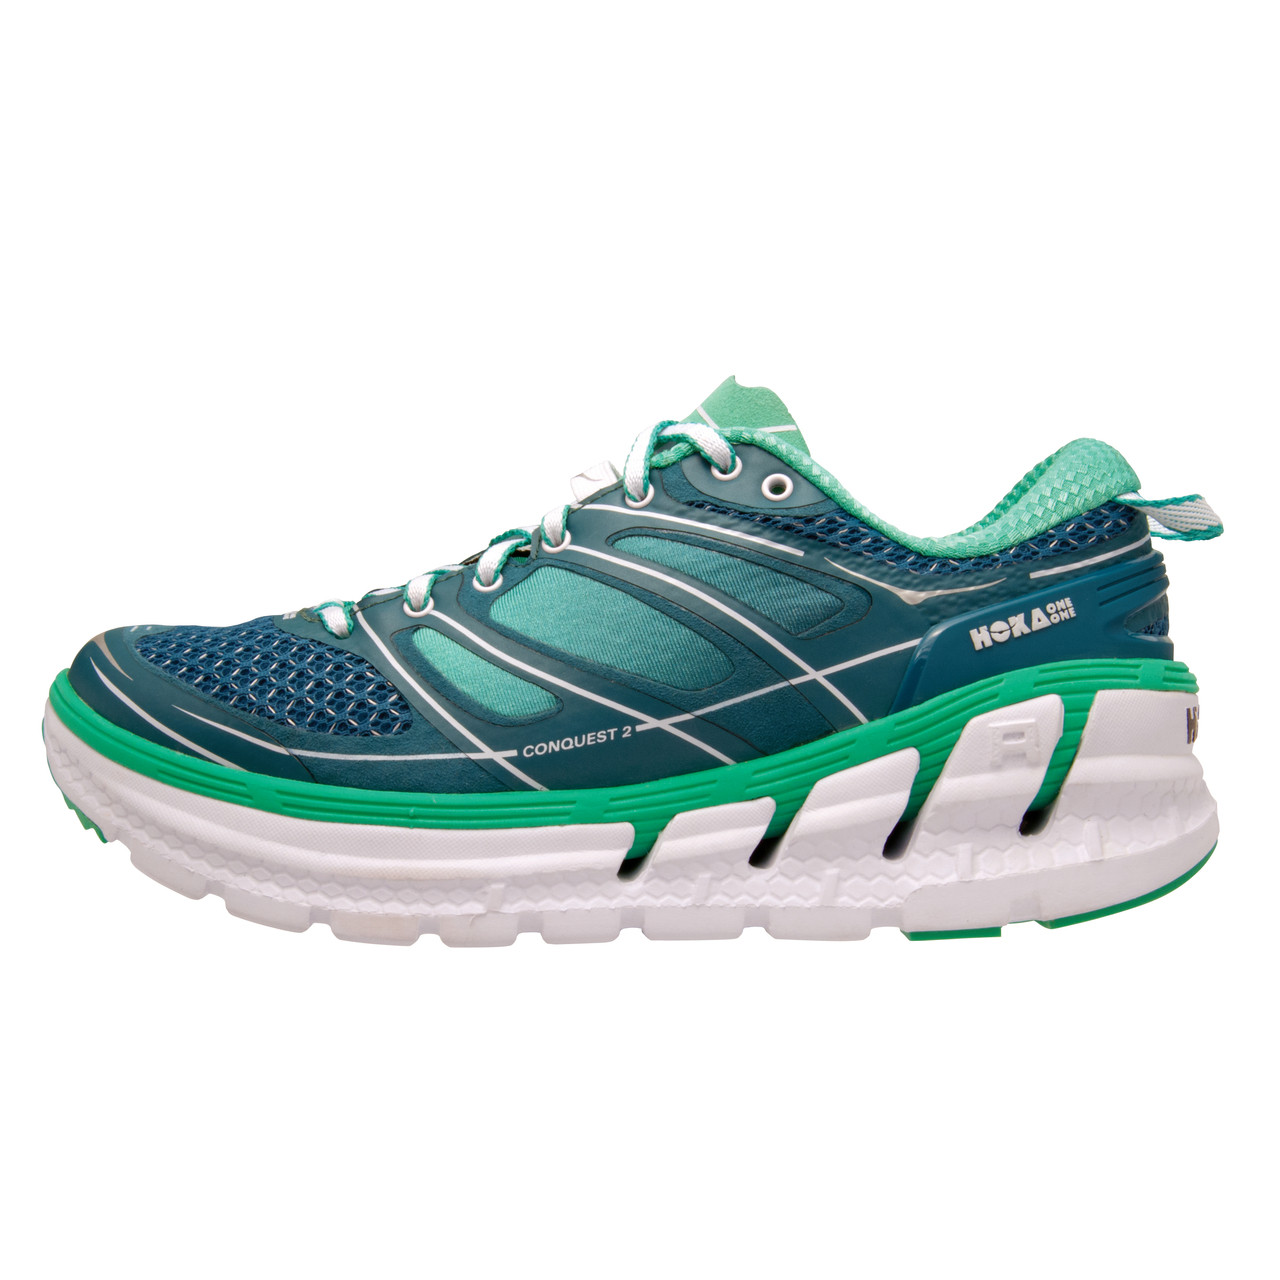 Hoka One One Women's Conquest 2 Shoe - 2016 price